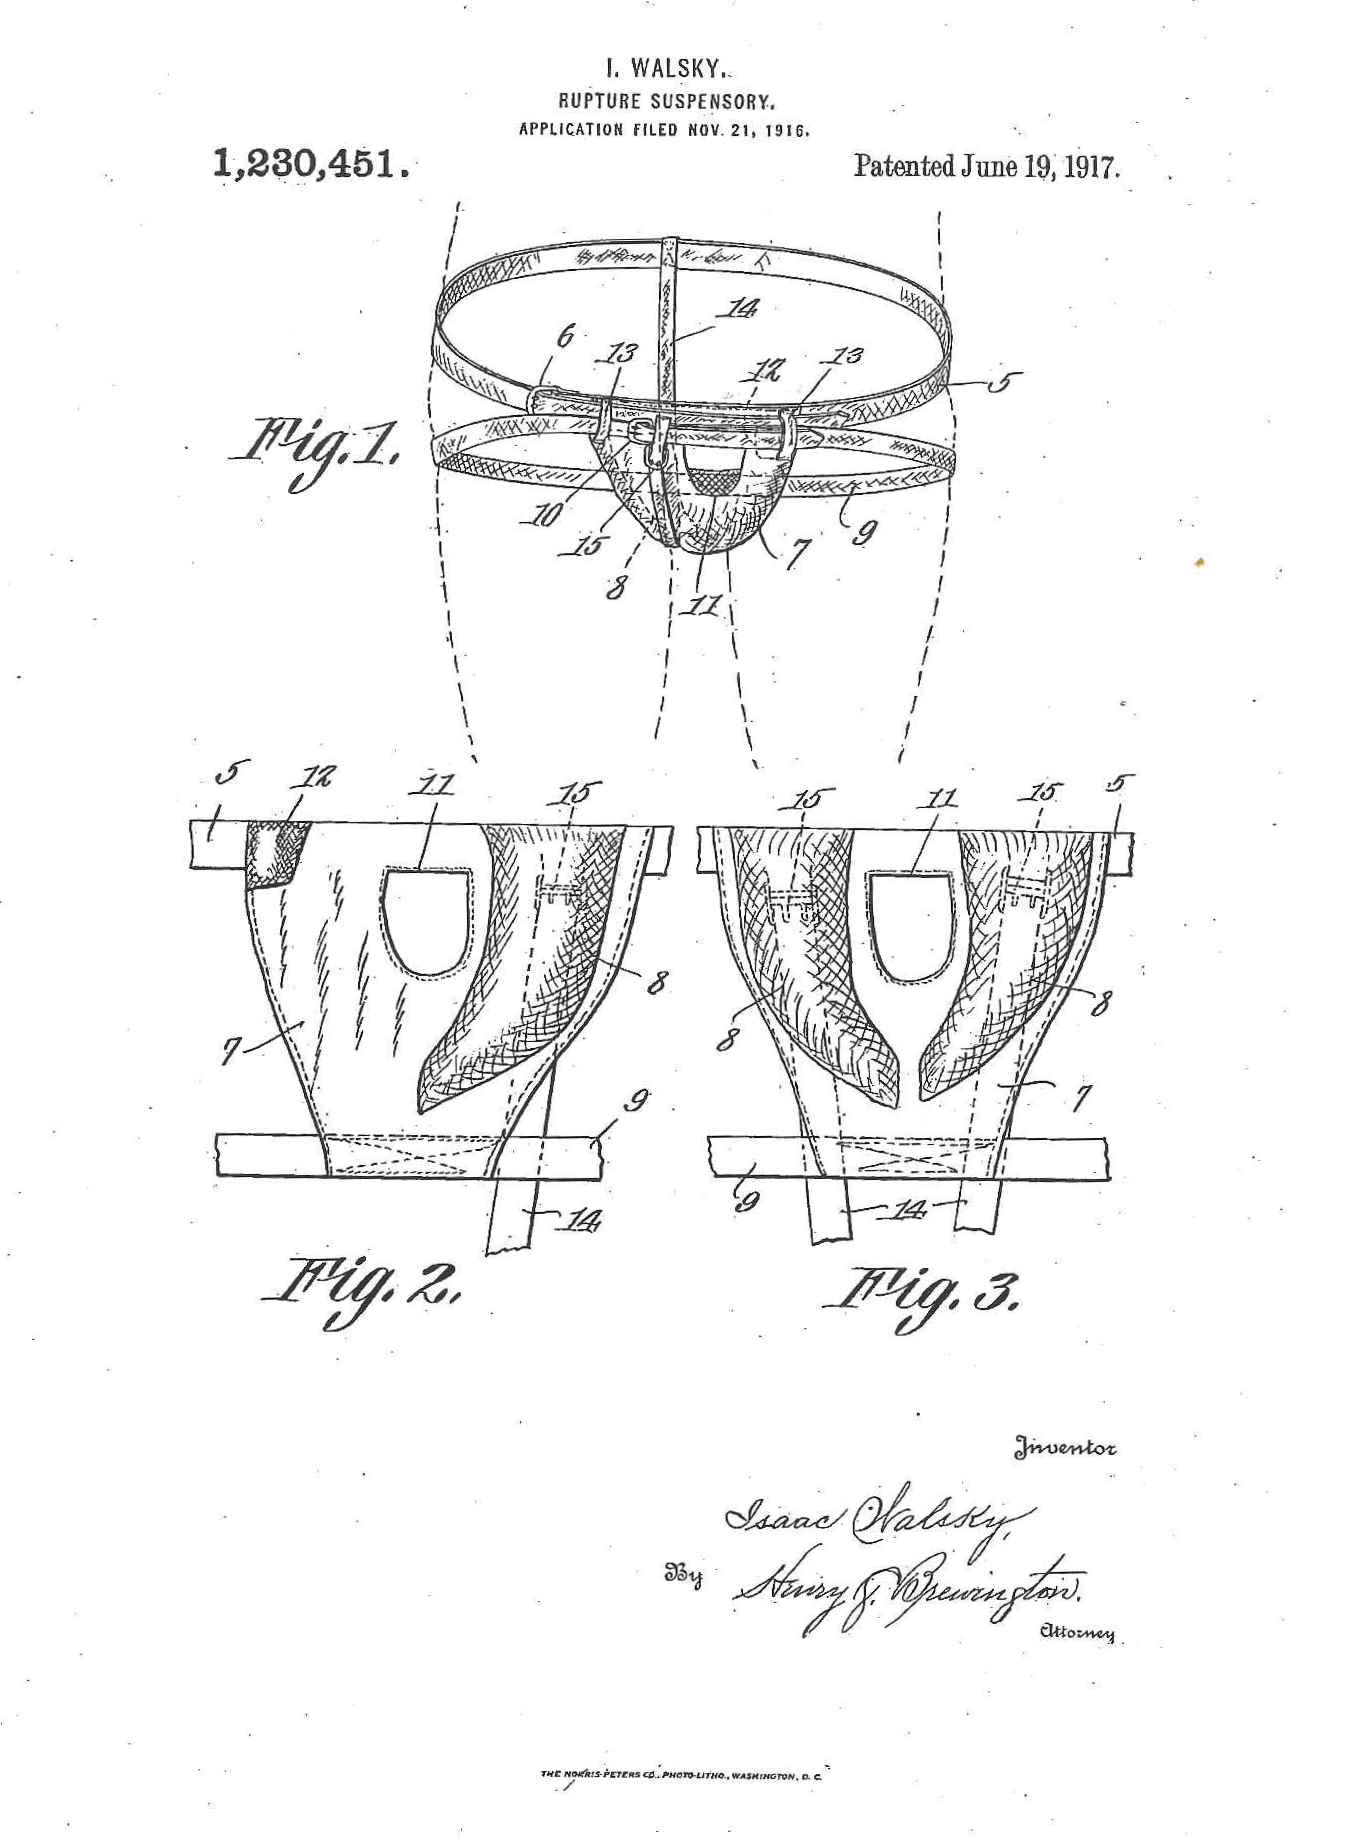 Walsky's improved rupture-suspensory, 1917. Via Google Patents